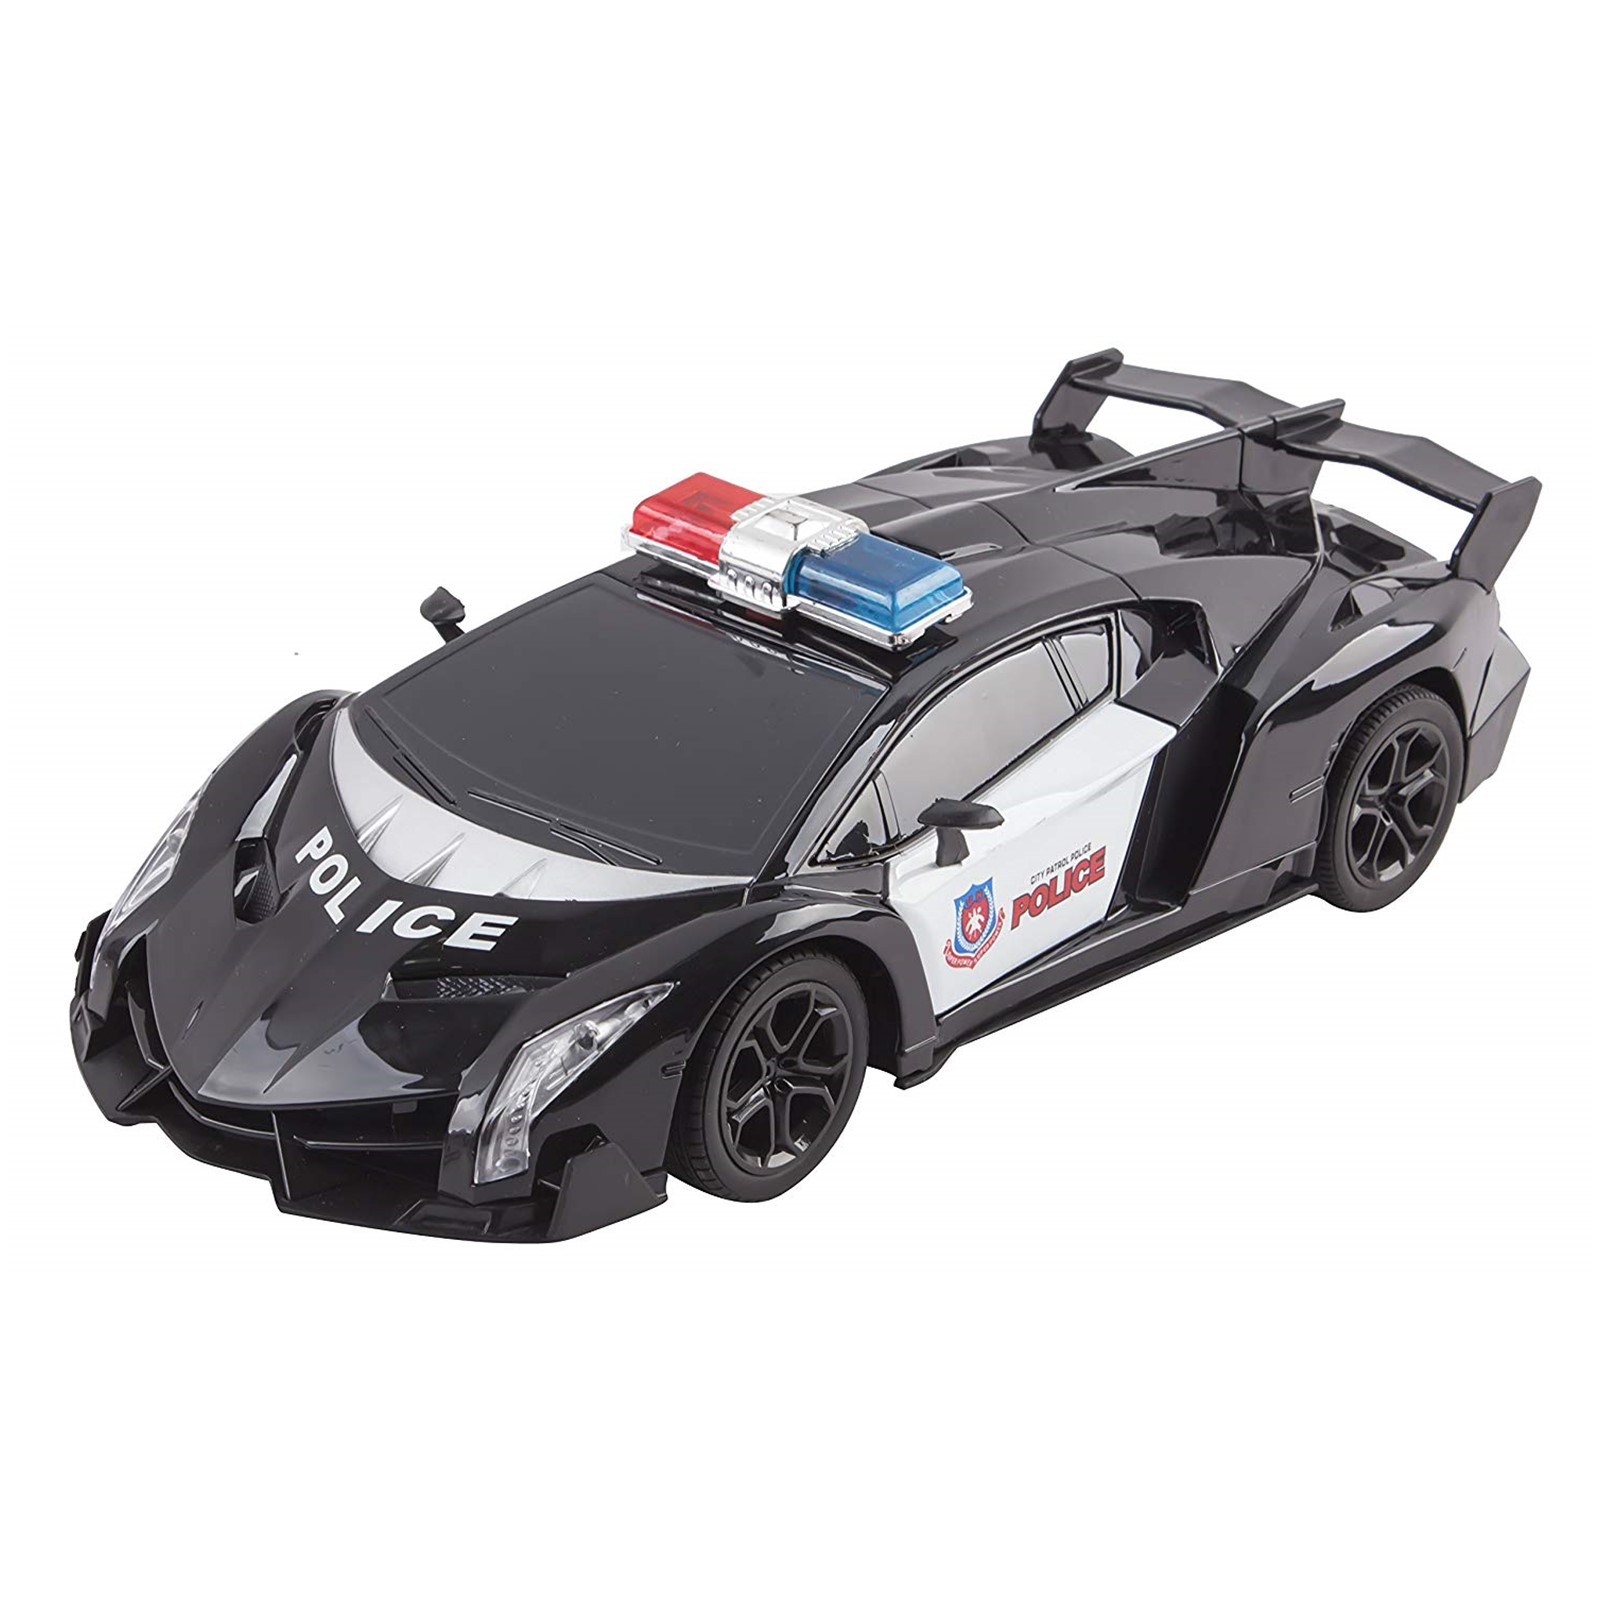 Police RC Car Super Exotic Large 116 Scale Size Kids Remote Control Easy To Operate Toy Sports Cars With Functional LED Headlights Perfect Cop Race Vehicle Full Function Black